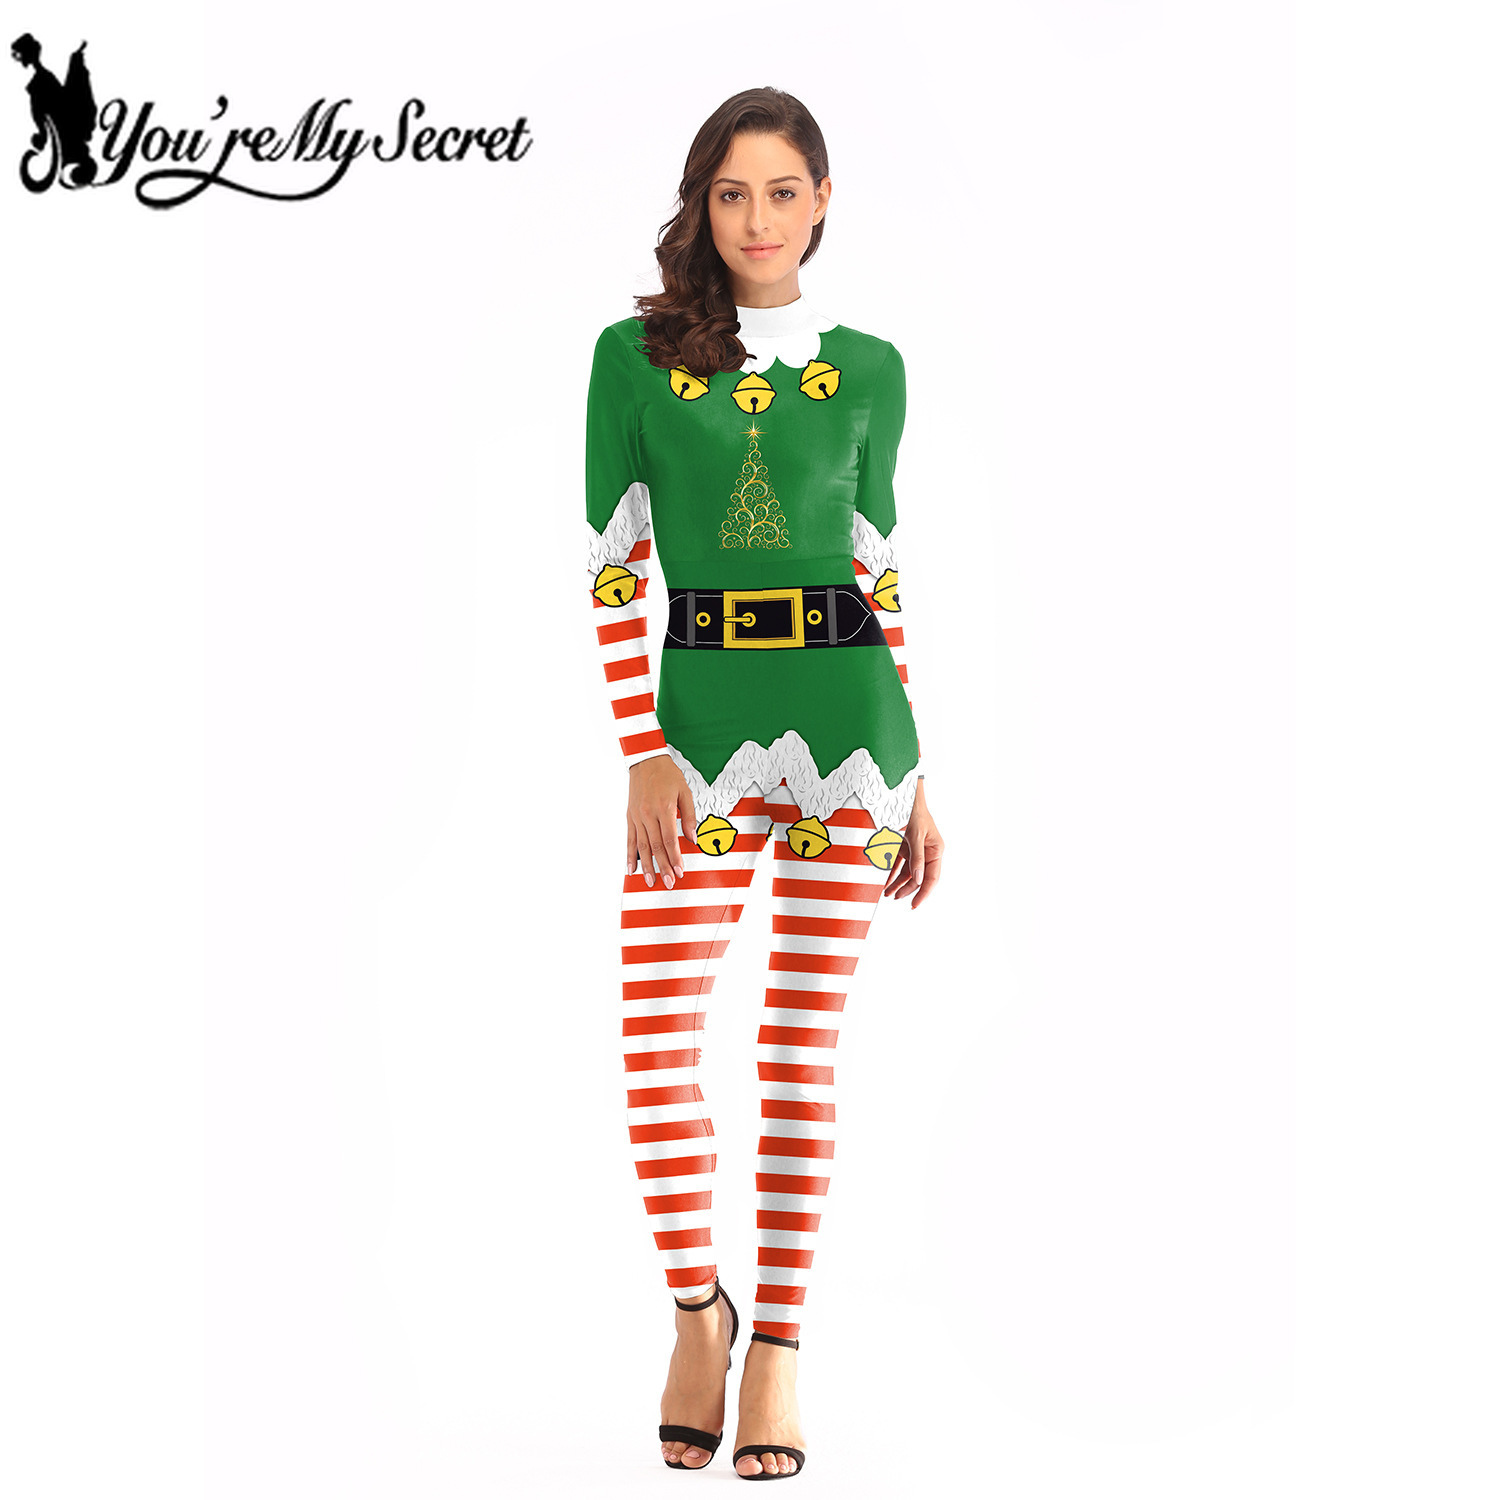 [You're My Secret] 2019 Christmas Fashion Holiday Party Women's Jumpsuit Adult Slim Elastic Bodysuit with Back Invisible Zipper